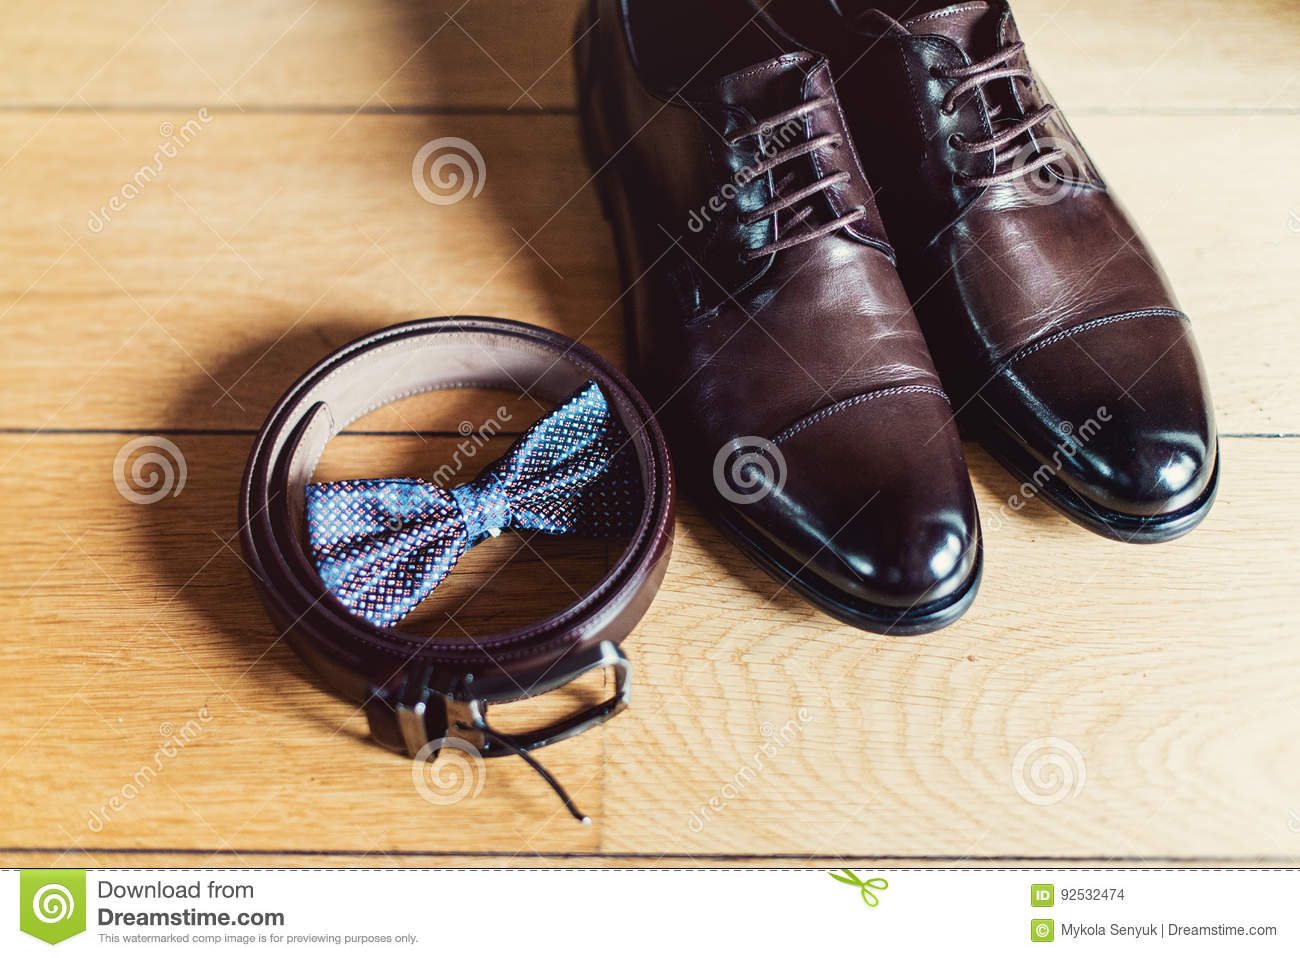 f77b24a9e9a6 Watch Brown bow tie, leather shoes and belt. Grooms wedding morning. Close  up of modern man accessories. Look from above